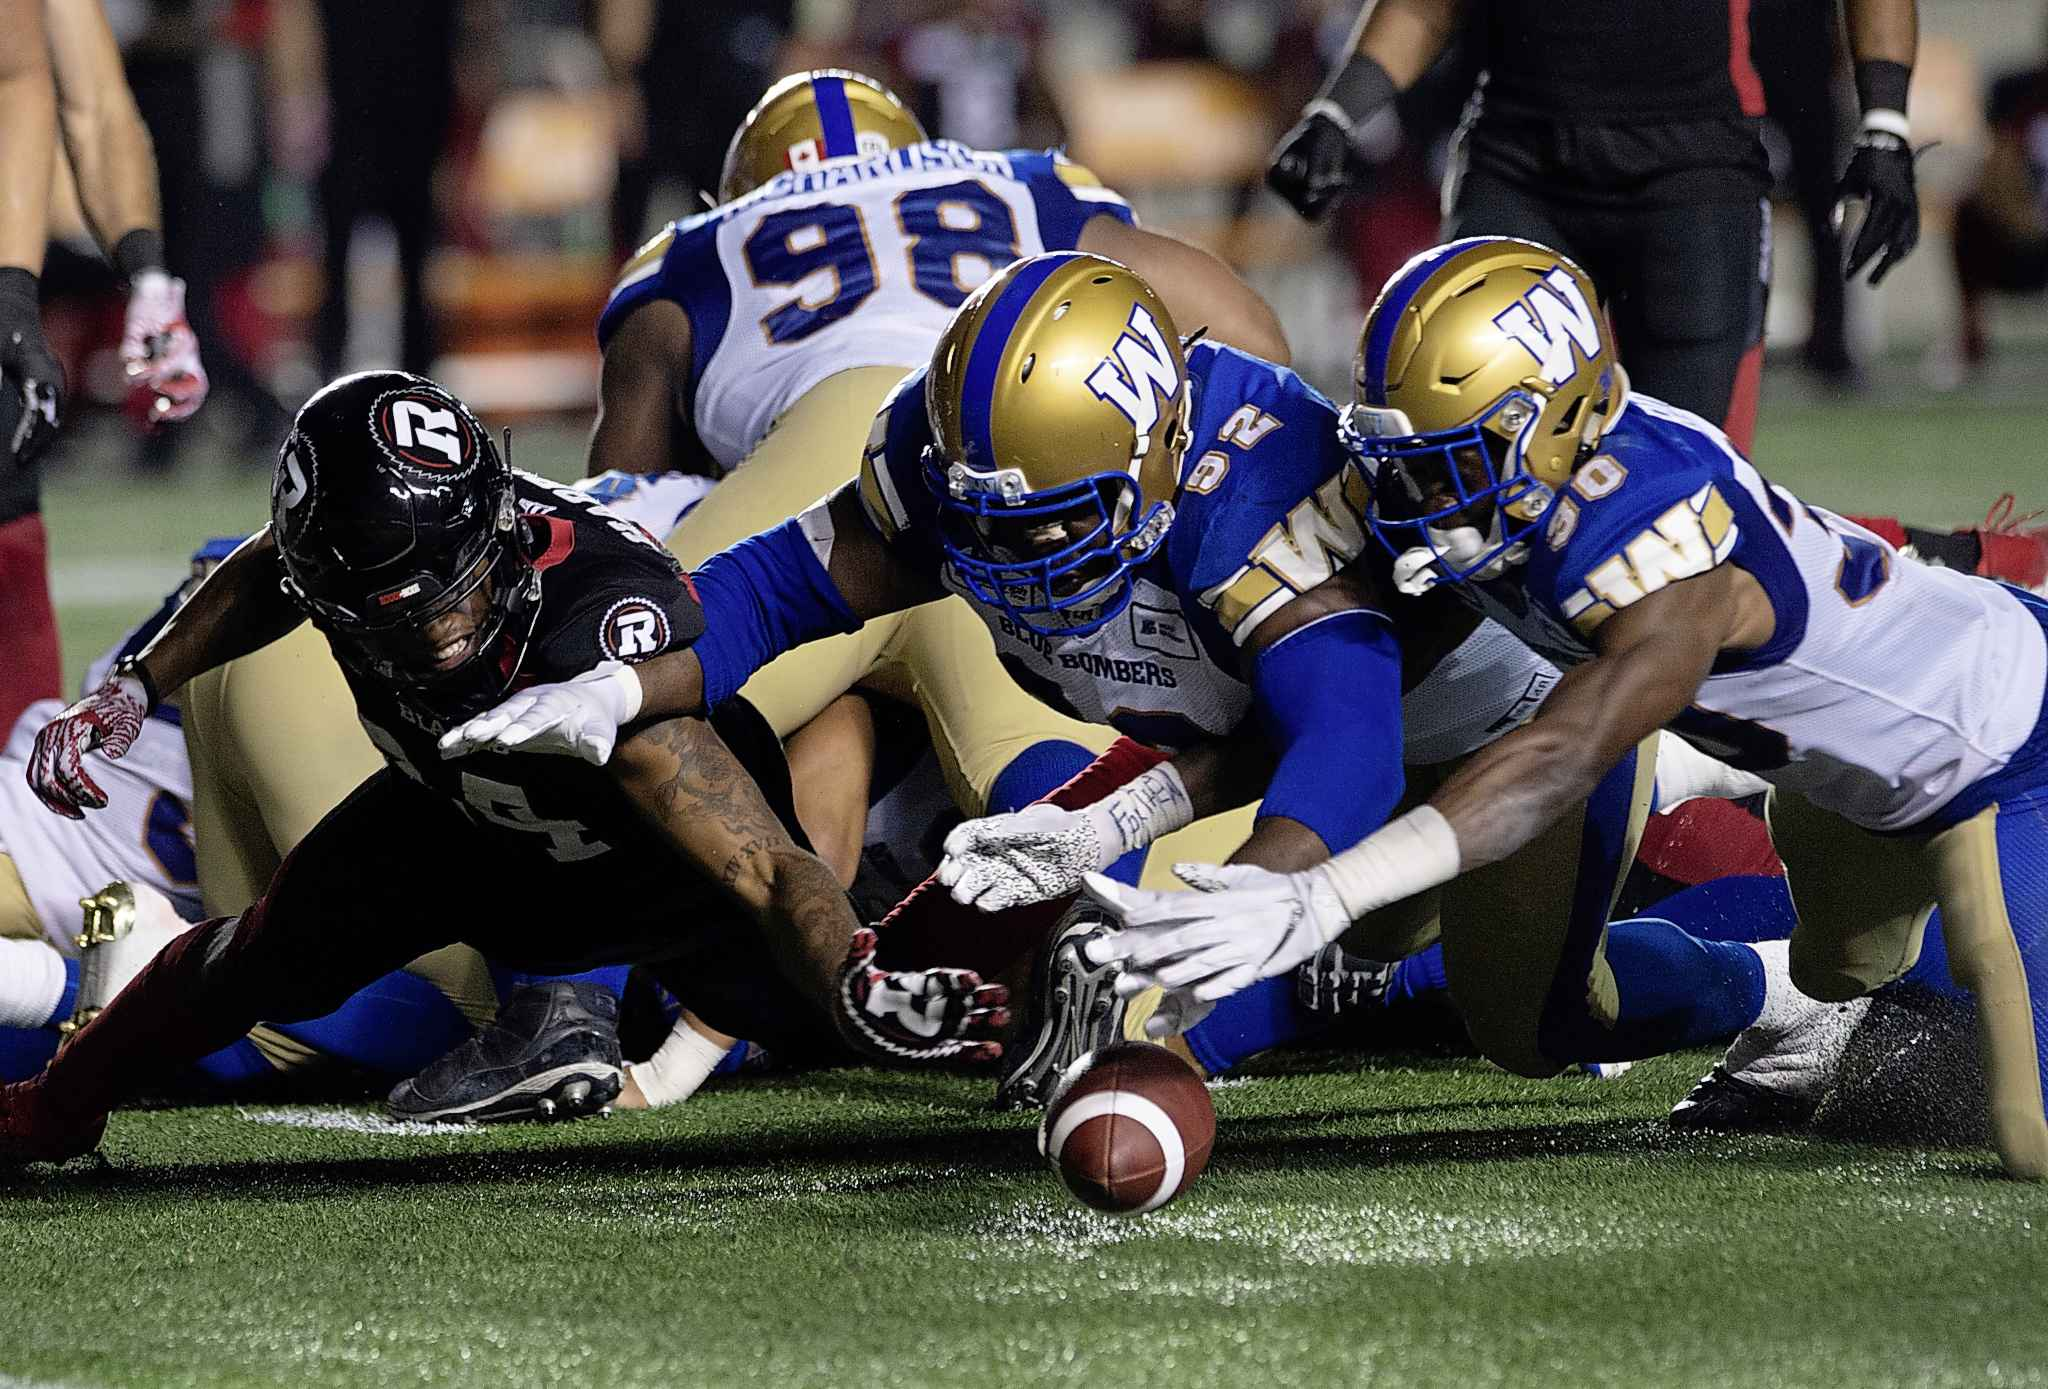 Winnipeg Blue Bombers defensive tackle Drake Nevis, centre, and teammate Winston Rose dive to recover a loose ball in Ottawa, last Friday. The Bombers D-corps hasn't allowed an offensive touchdown since the first week of the regular season.